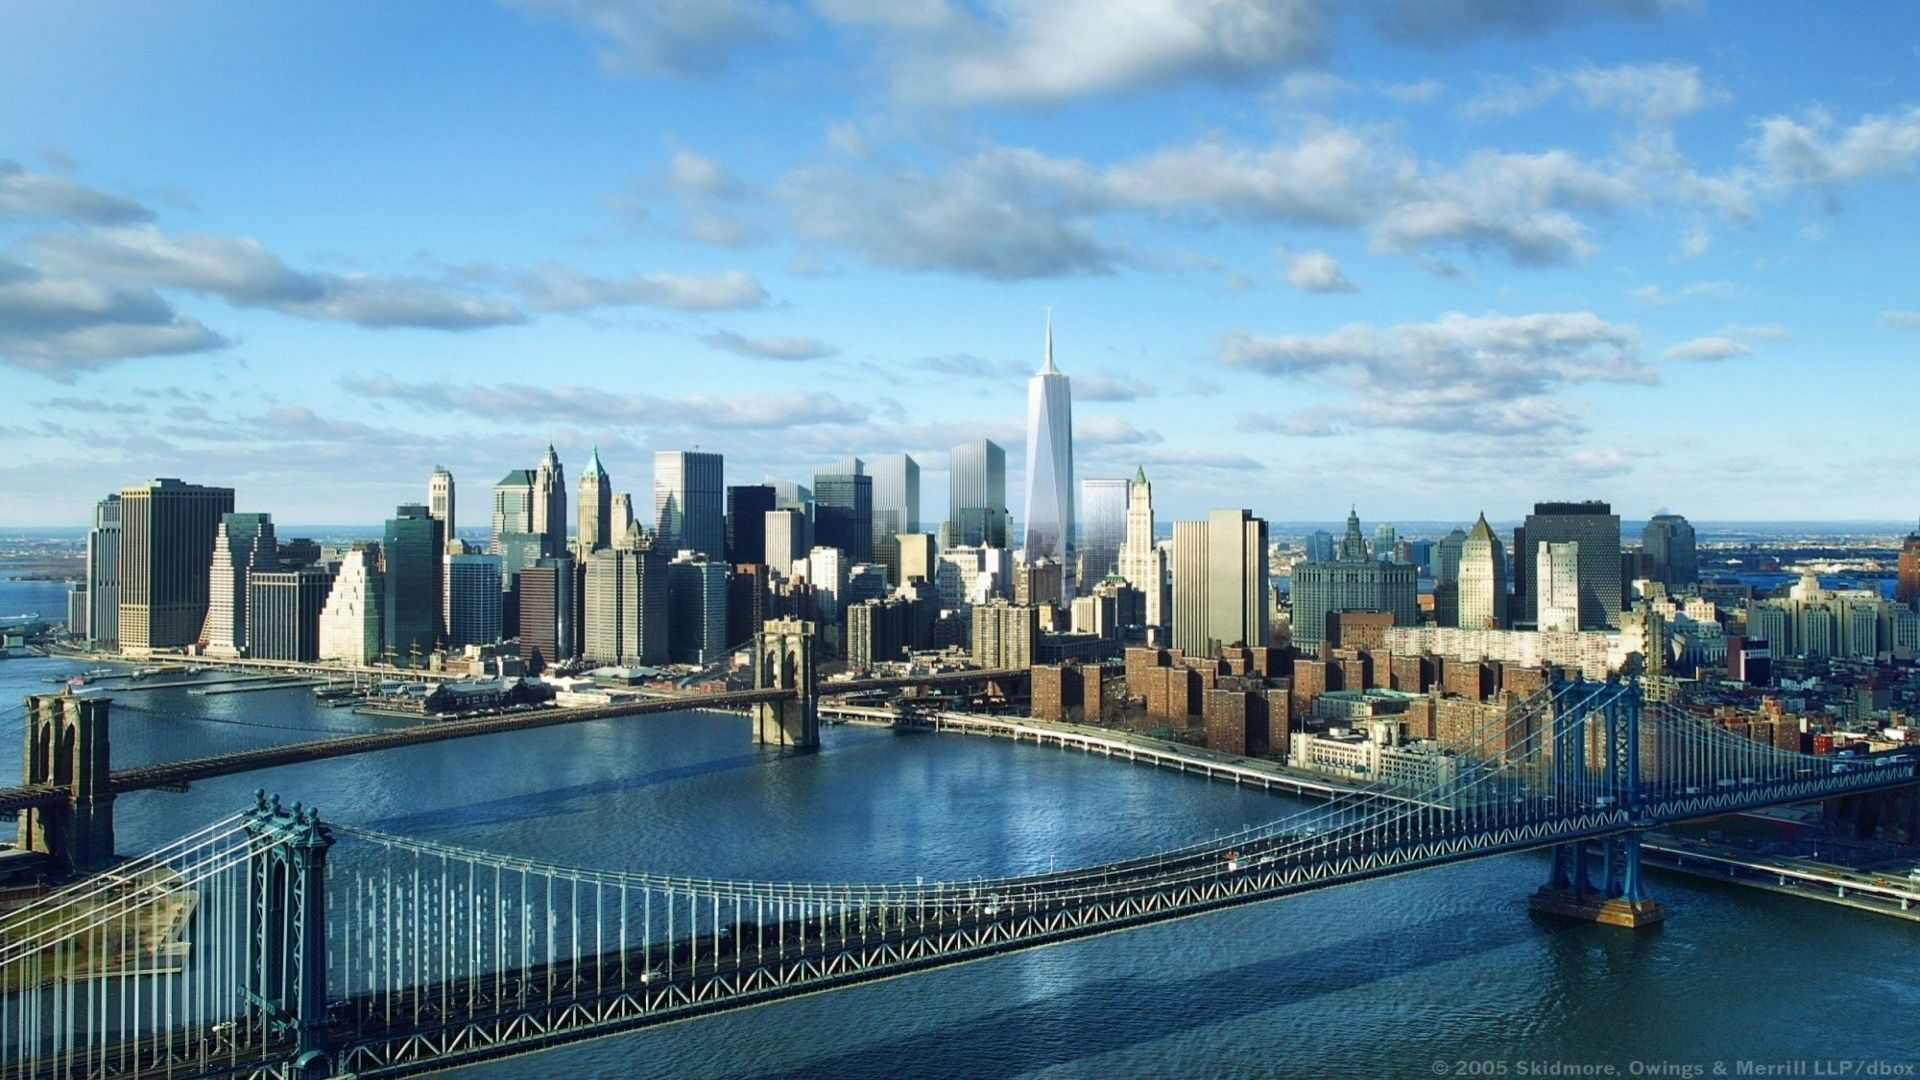 New York 1080p Desktop Wallpaper 1920×1080 Wallpaper